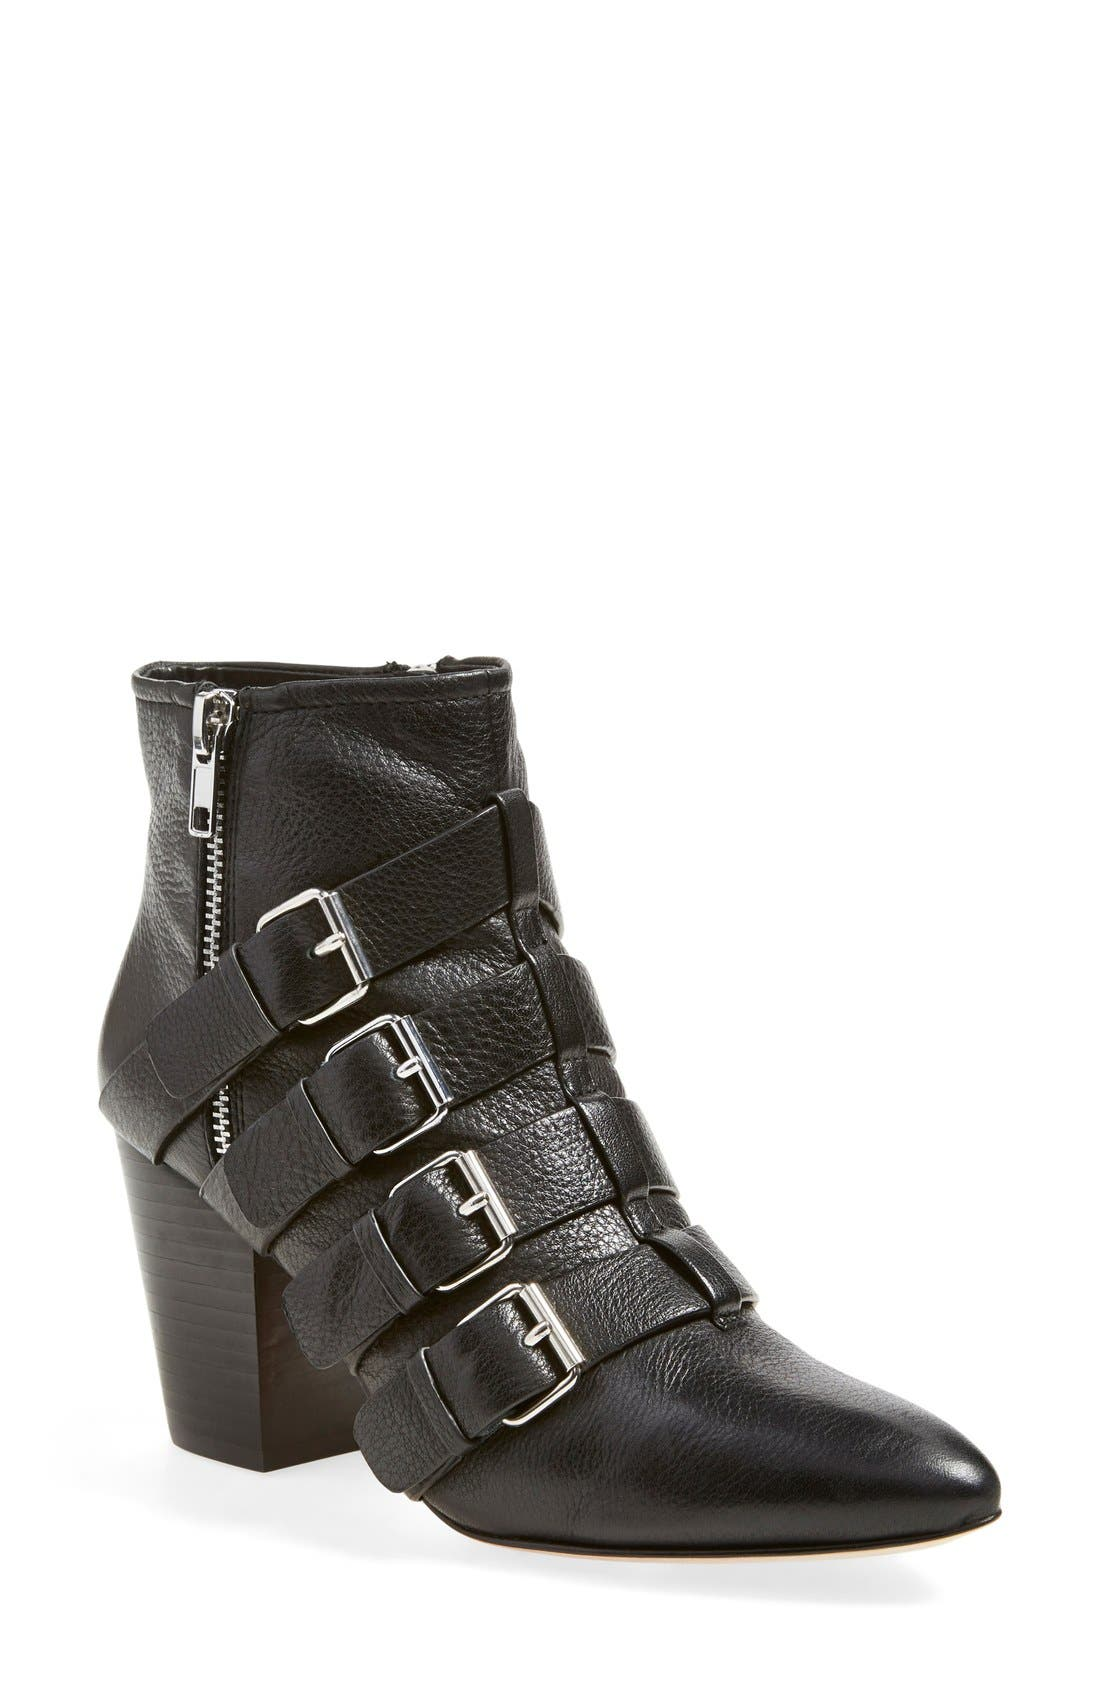 Alternate Image 1 Selected - Rebecca Minkoff 'Audrey' Bootie (Women)